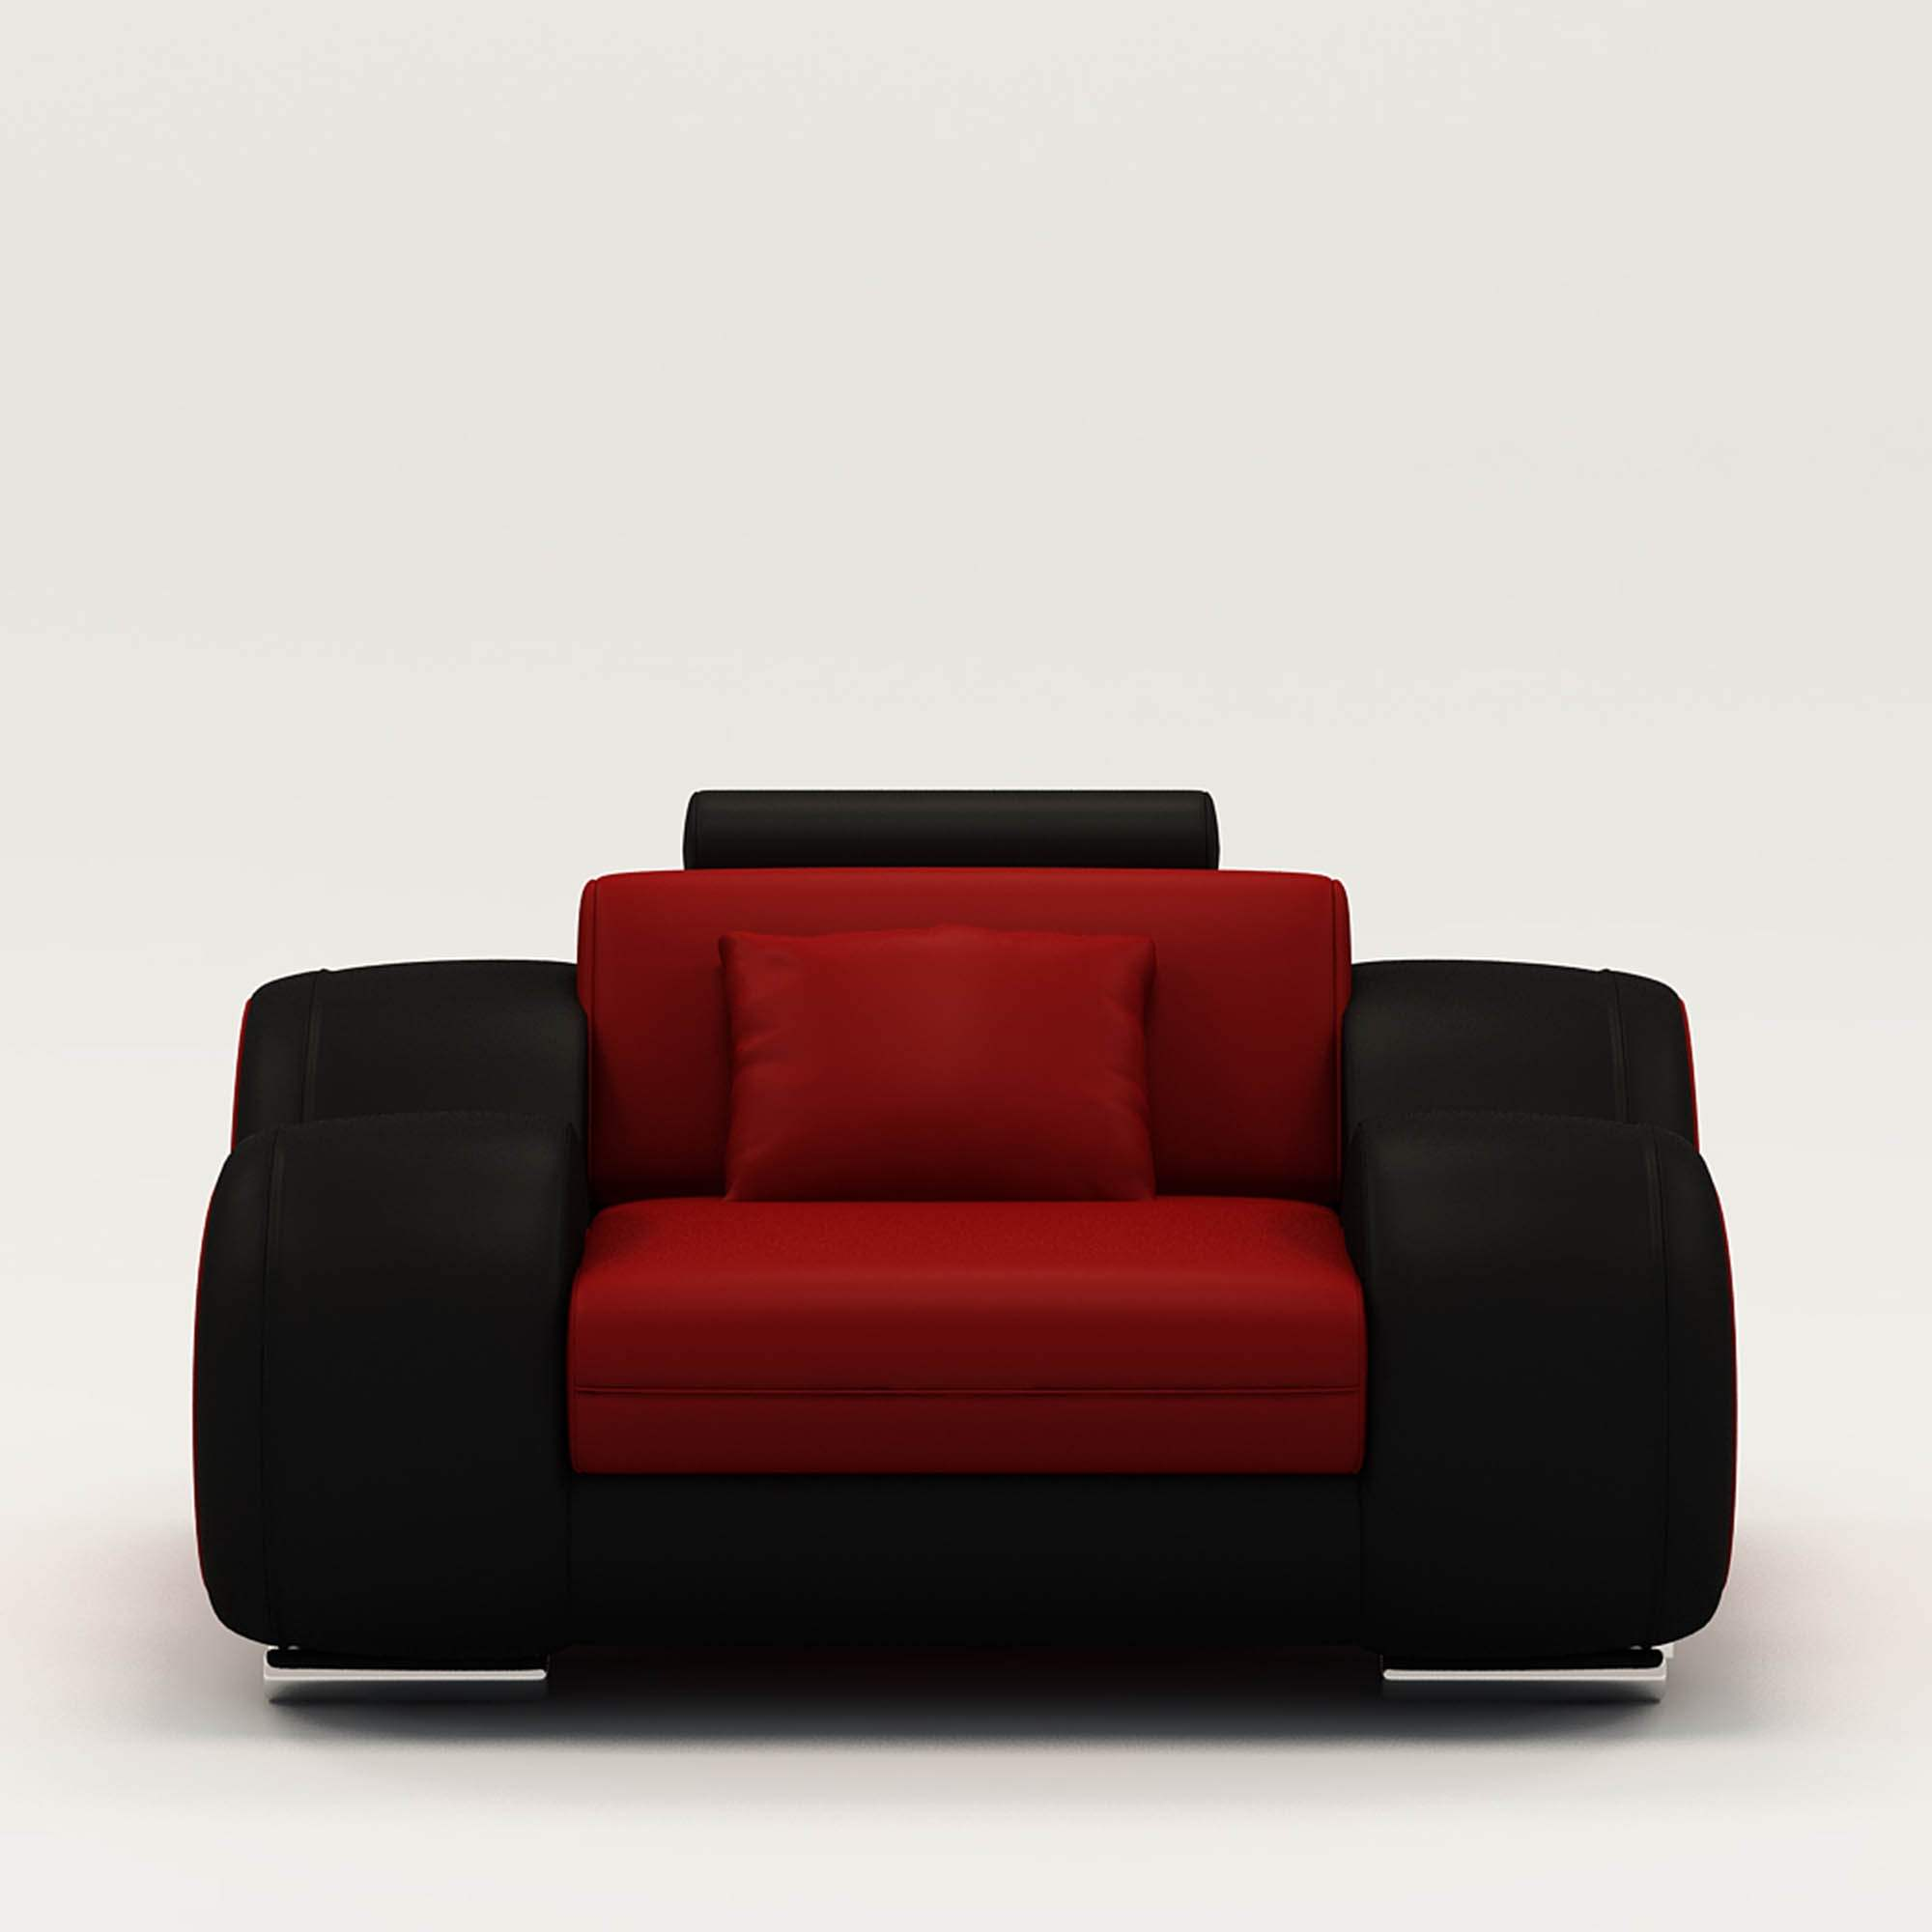 deco in paris 1 fauteuil cuir relax design rouge et noir. Black Bedroom Furniture Sets. Home Design Ideas